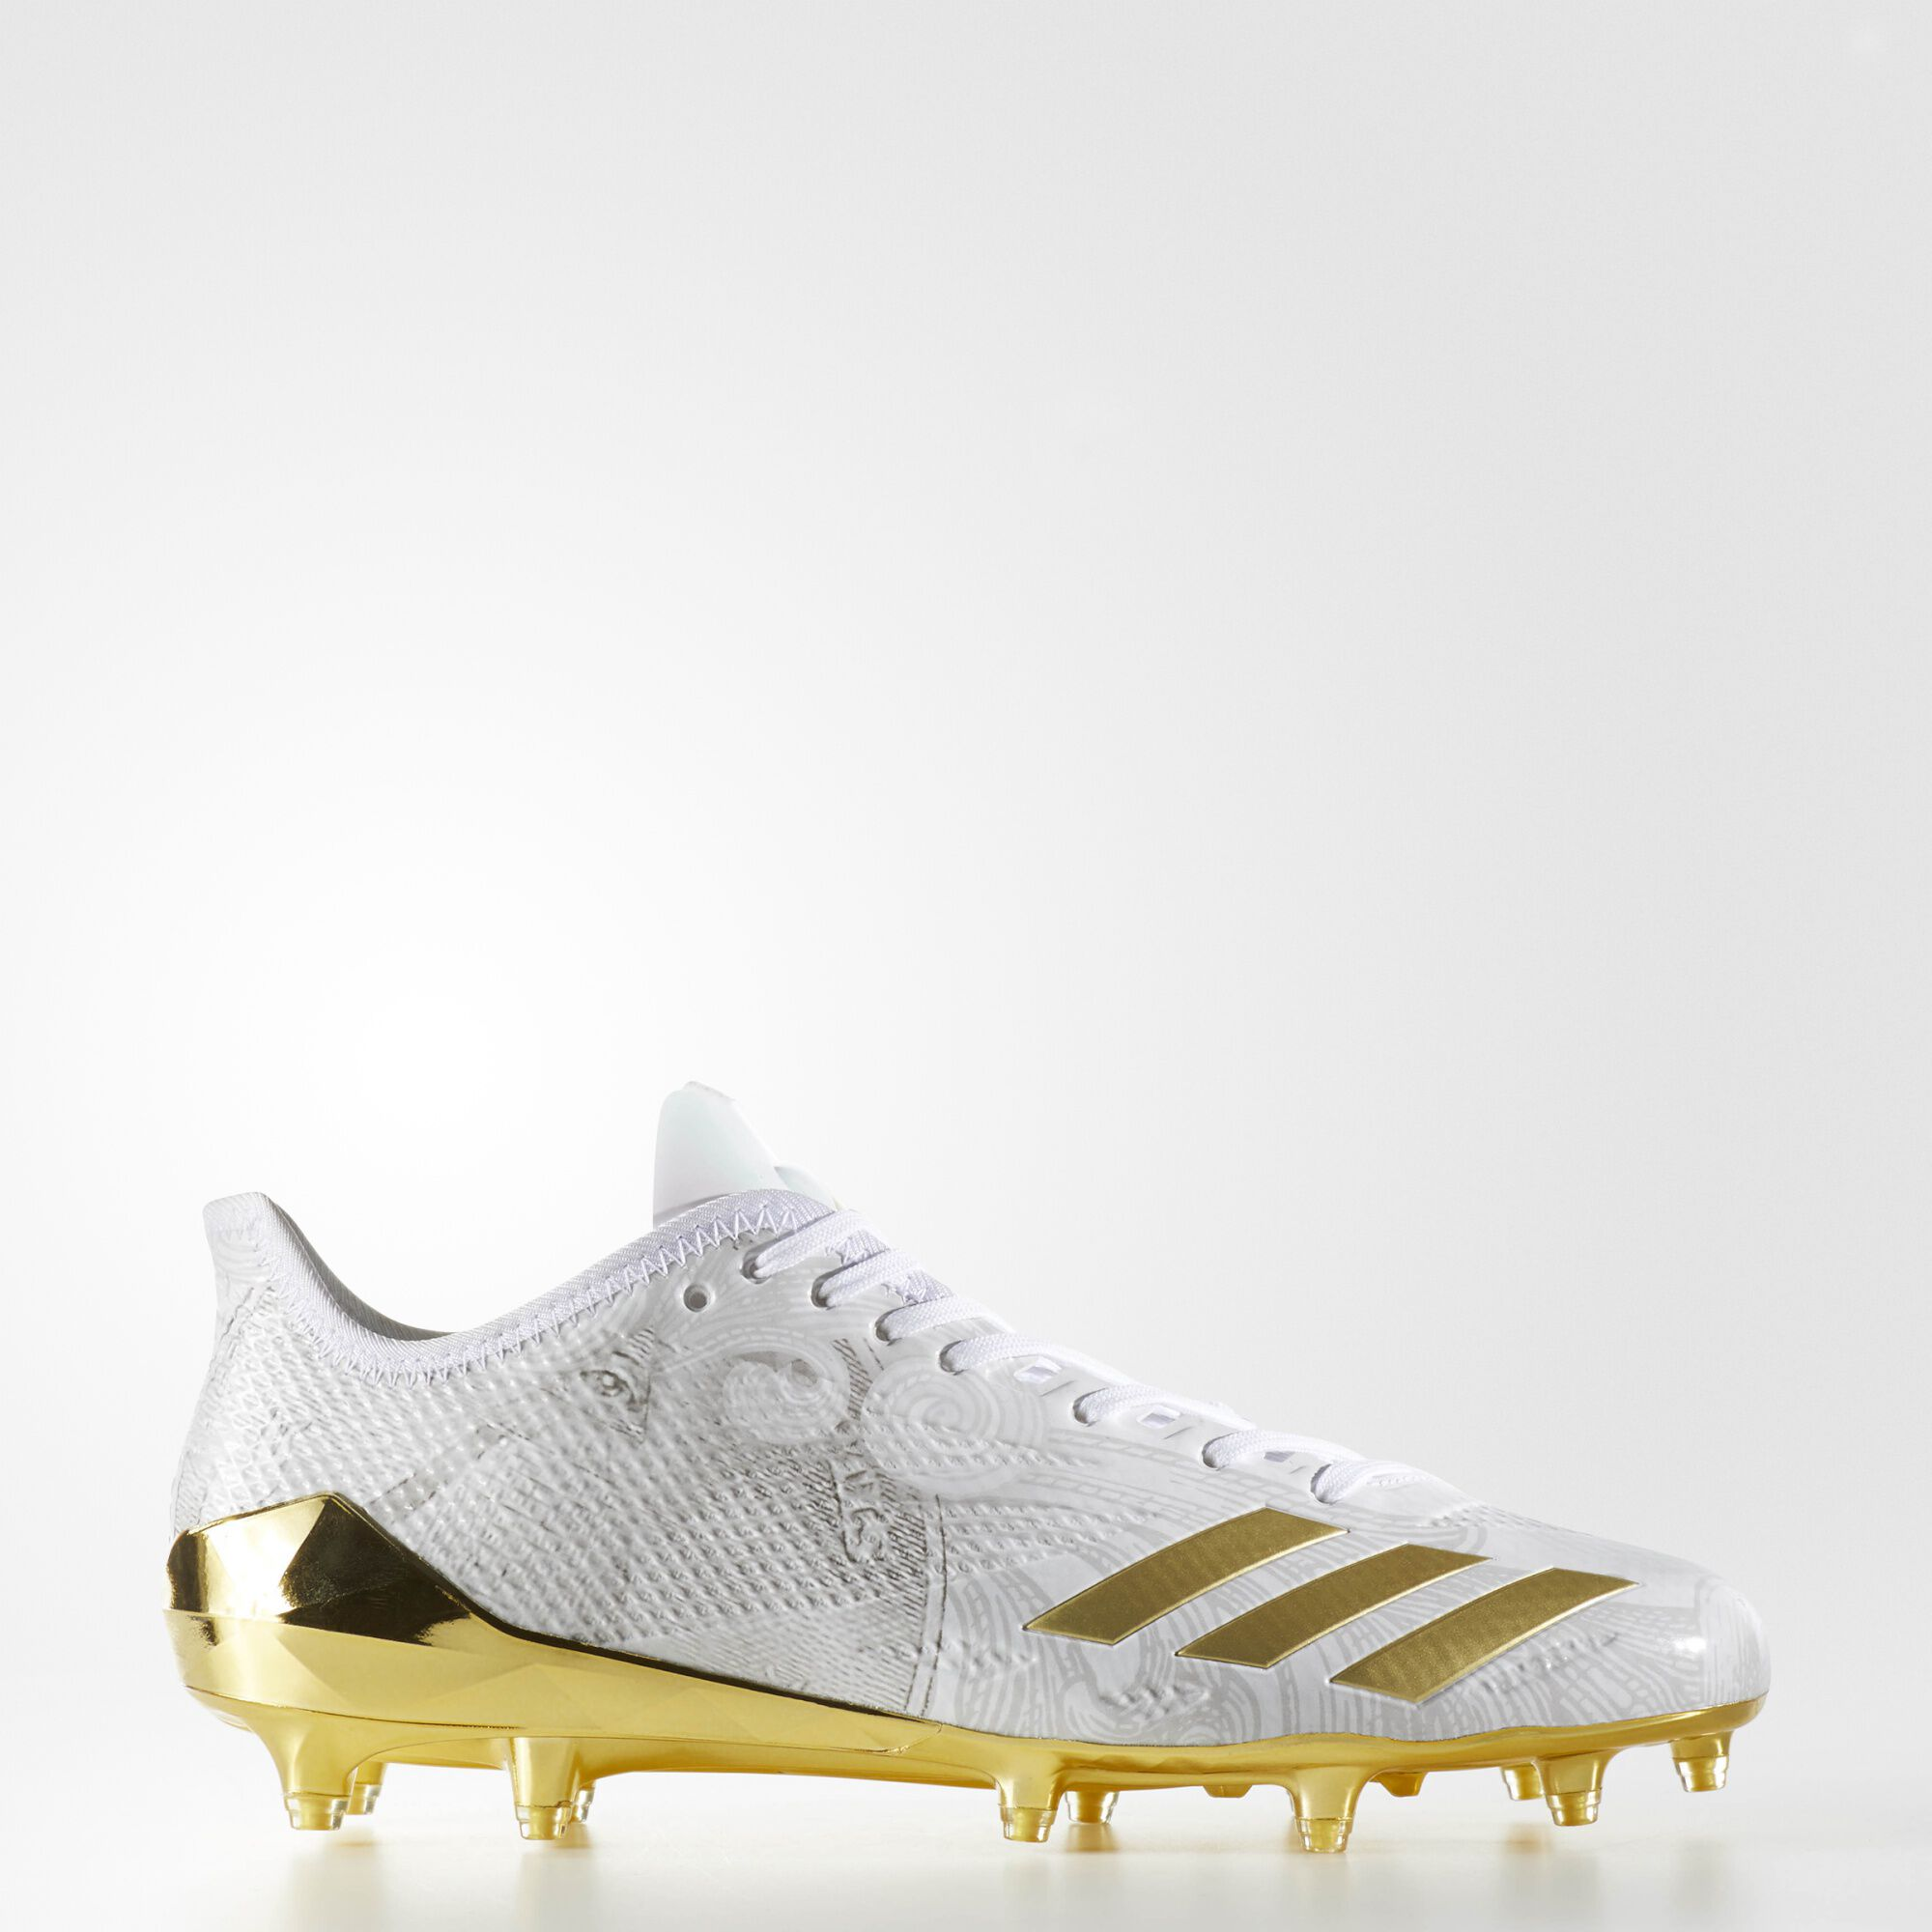 Adidas Football Cleats Gold